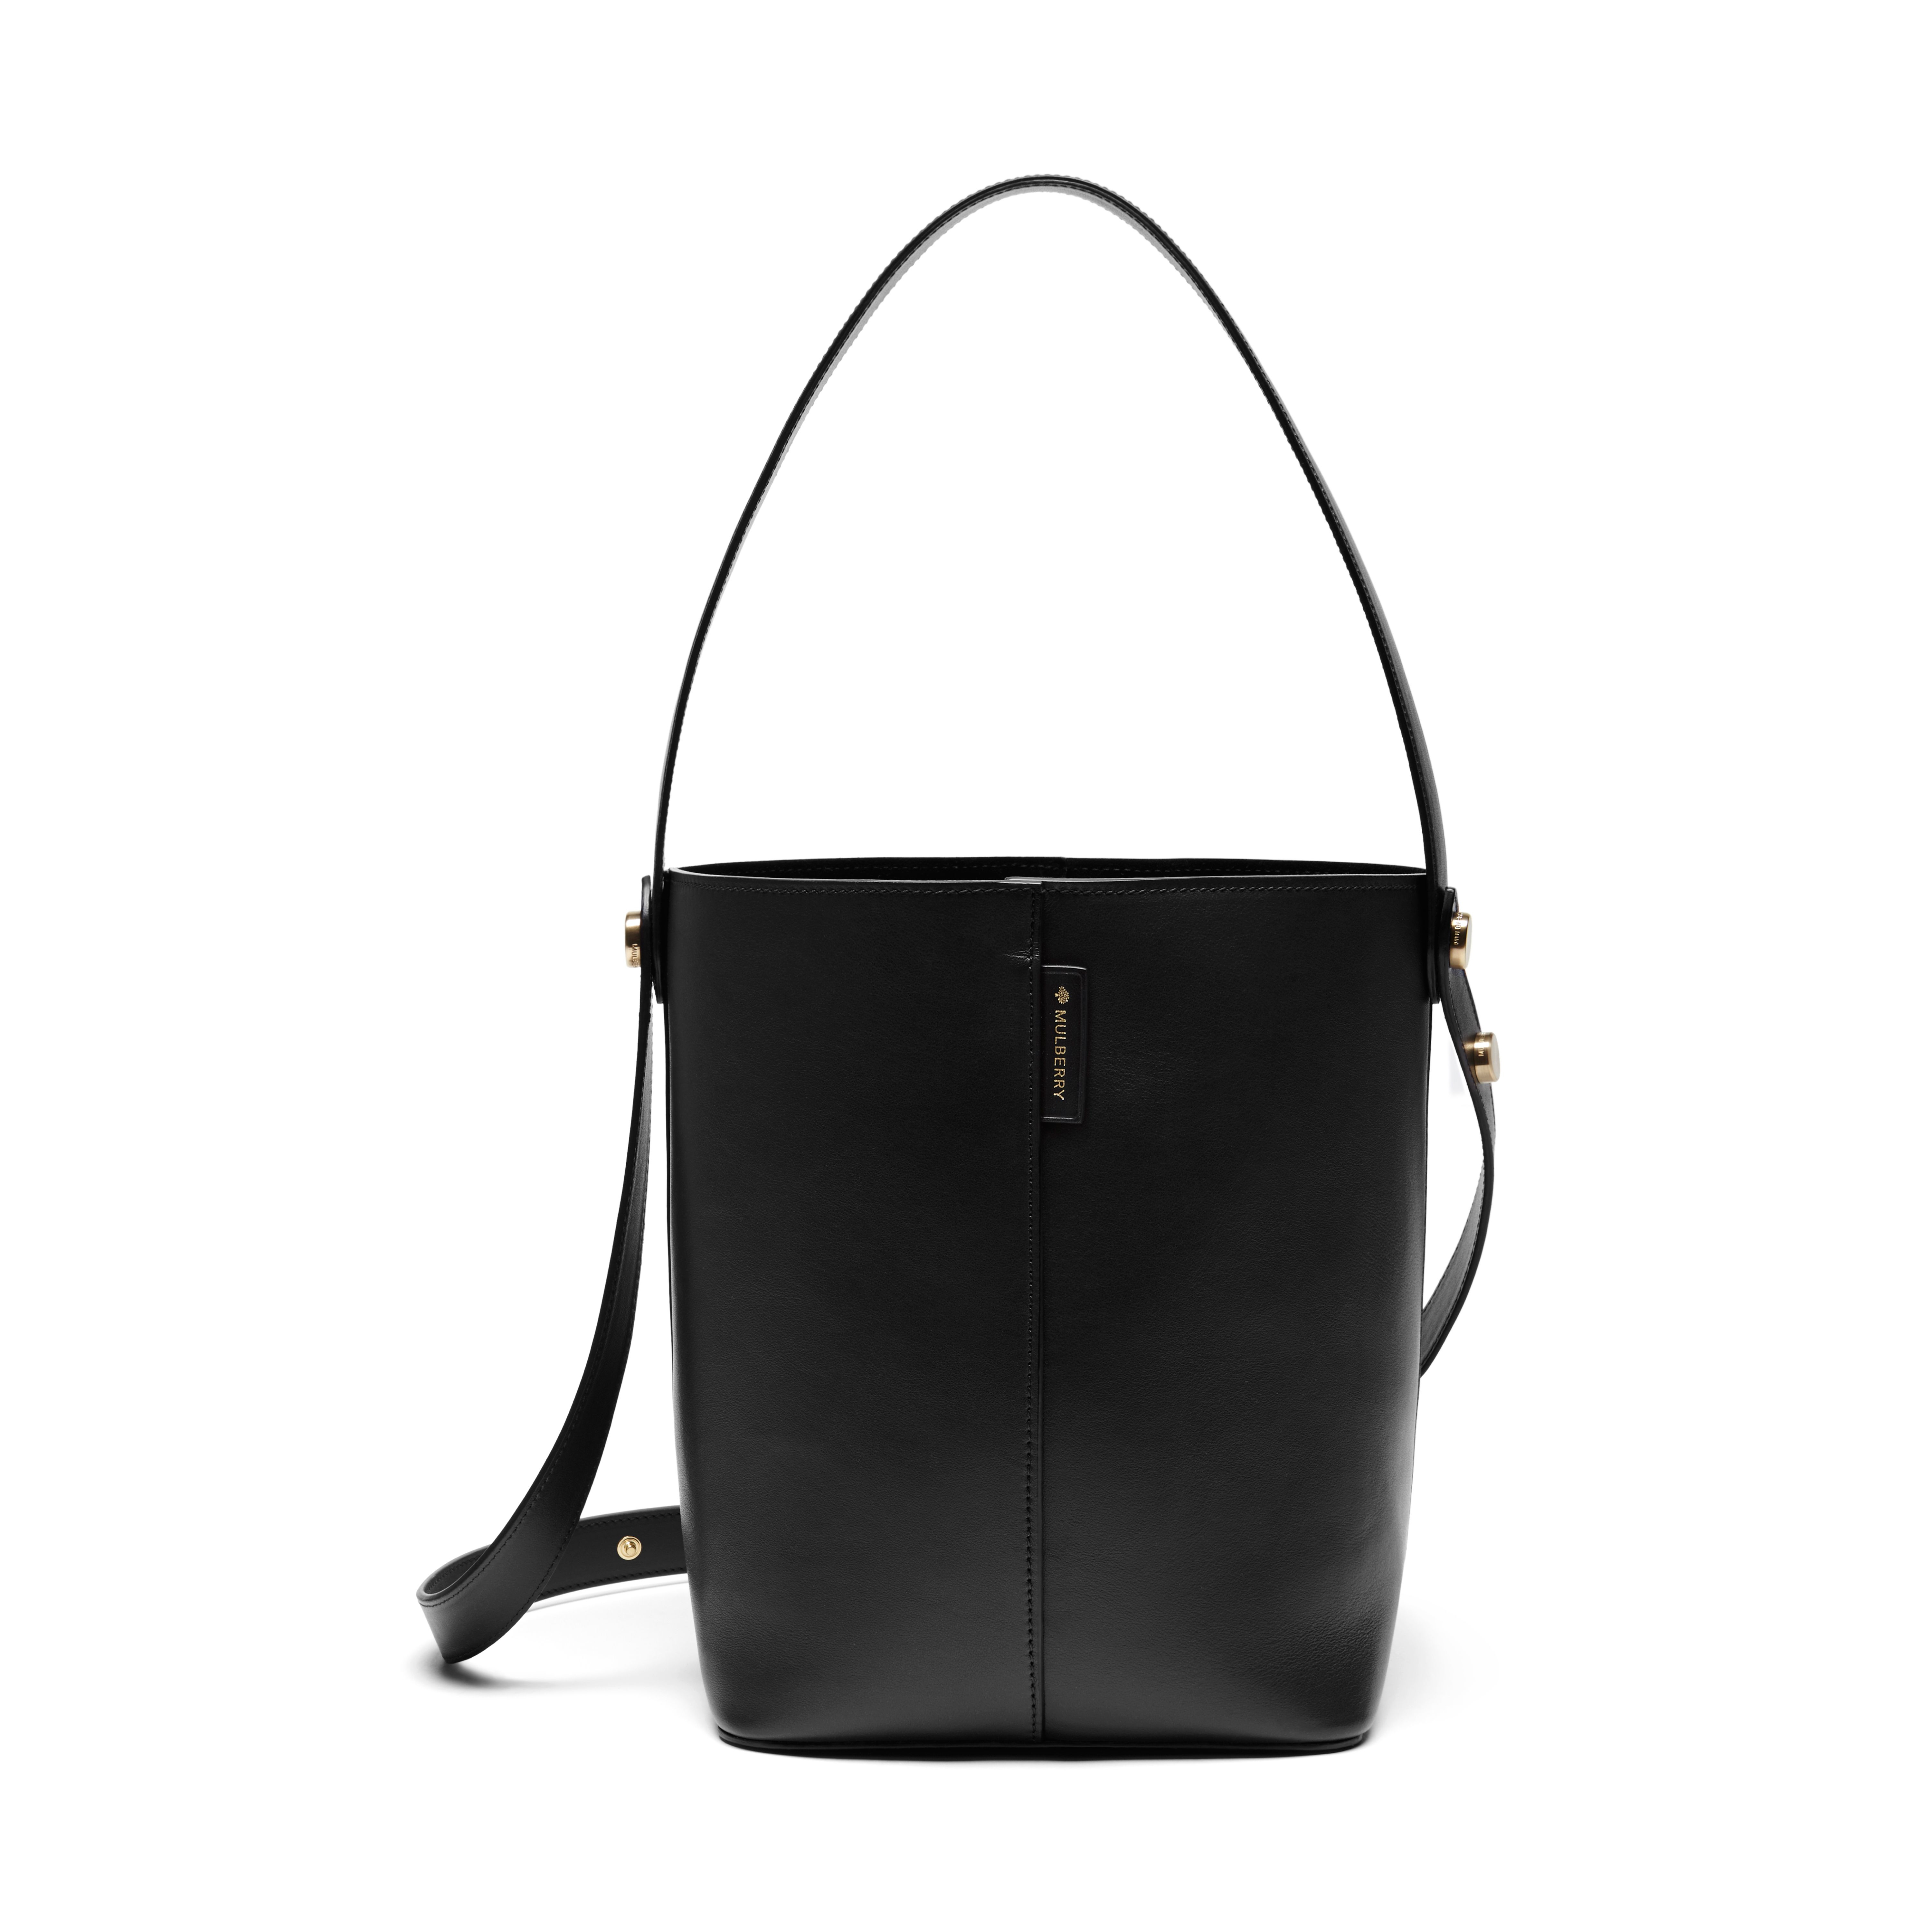 5079e826e0 Mulberry Kite Small Leather Shoulder Bag in Black - Lyst